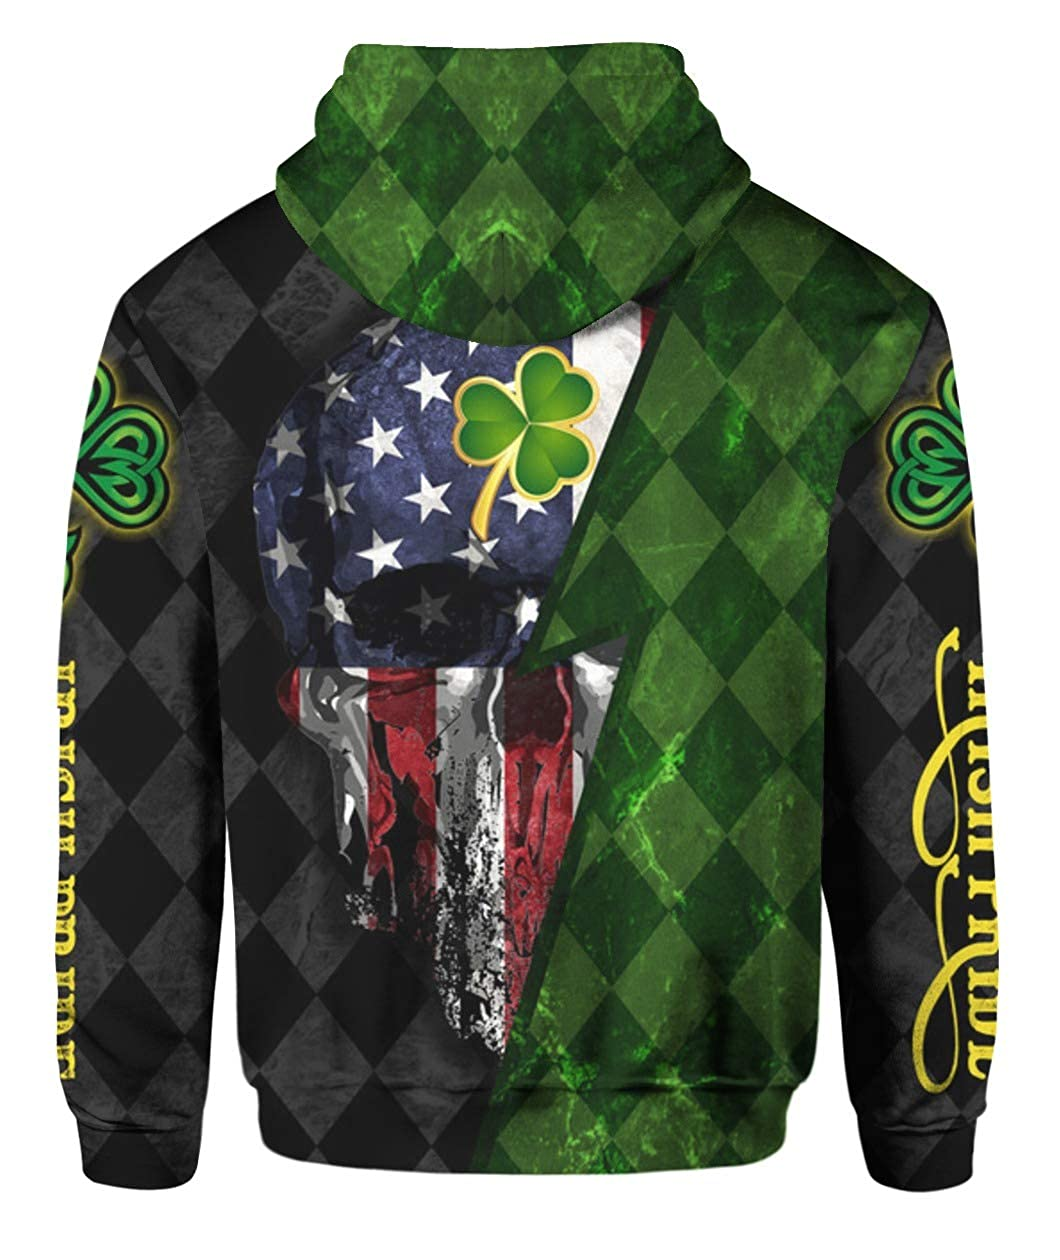 Patricks Day Irish Pride Skull 3D All Over Sublimation Printing Shirt